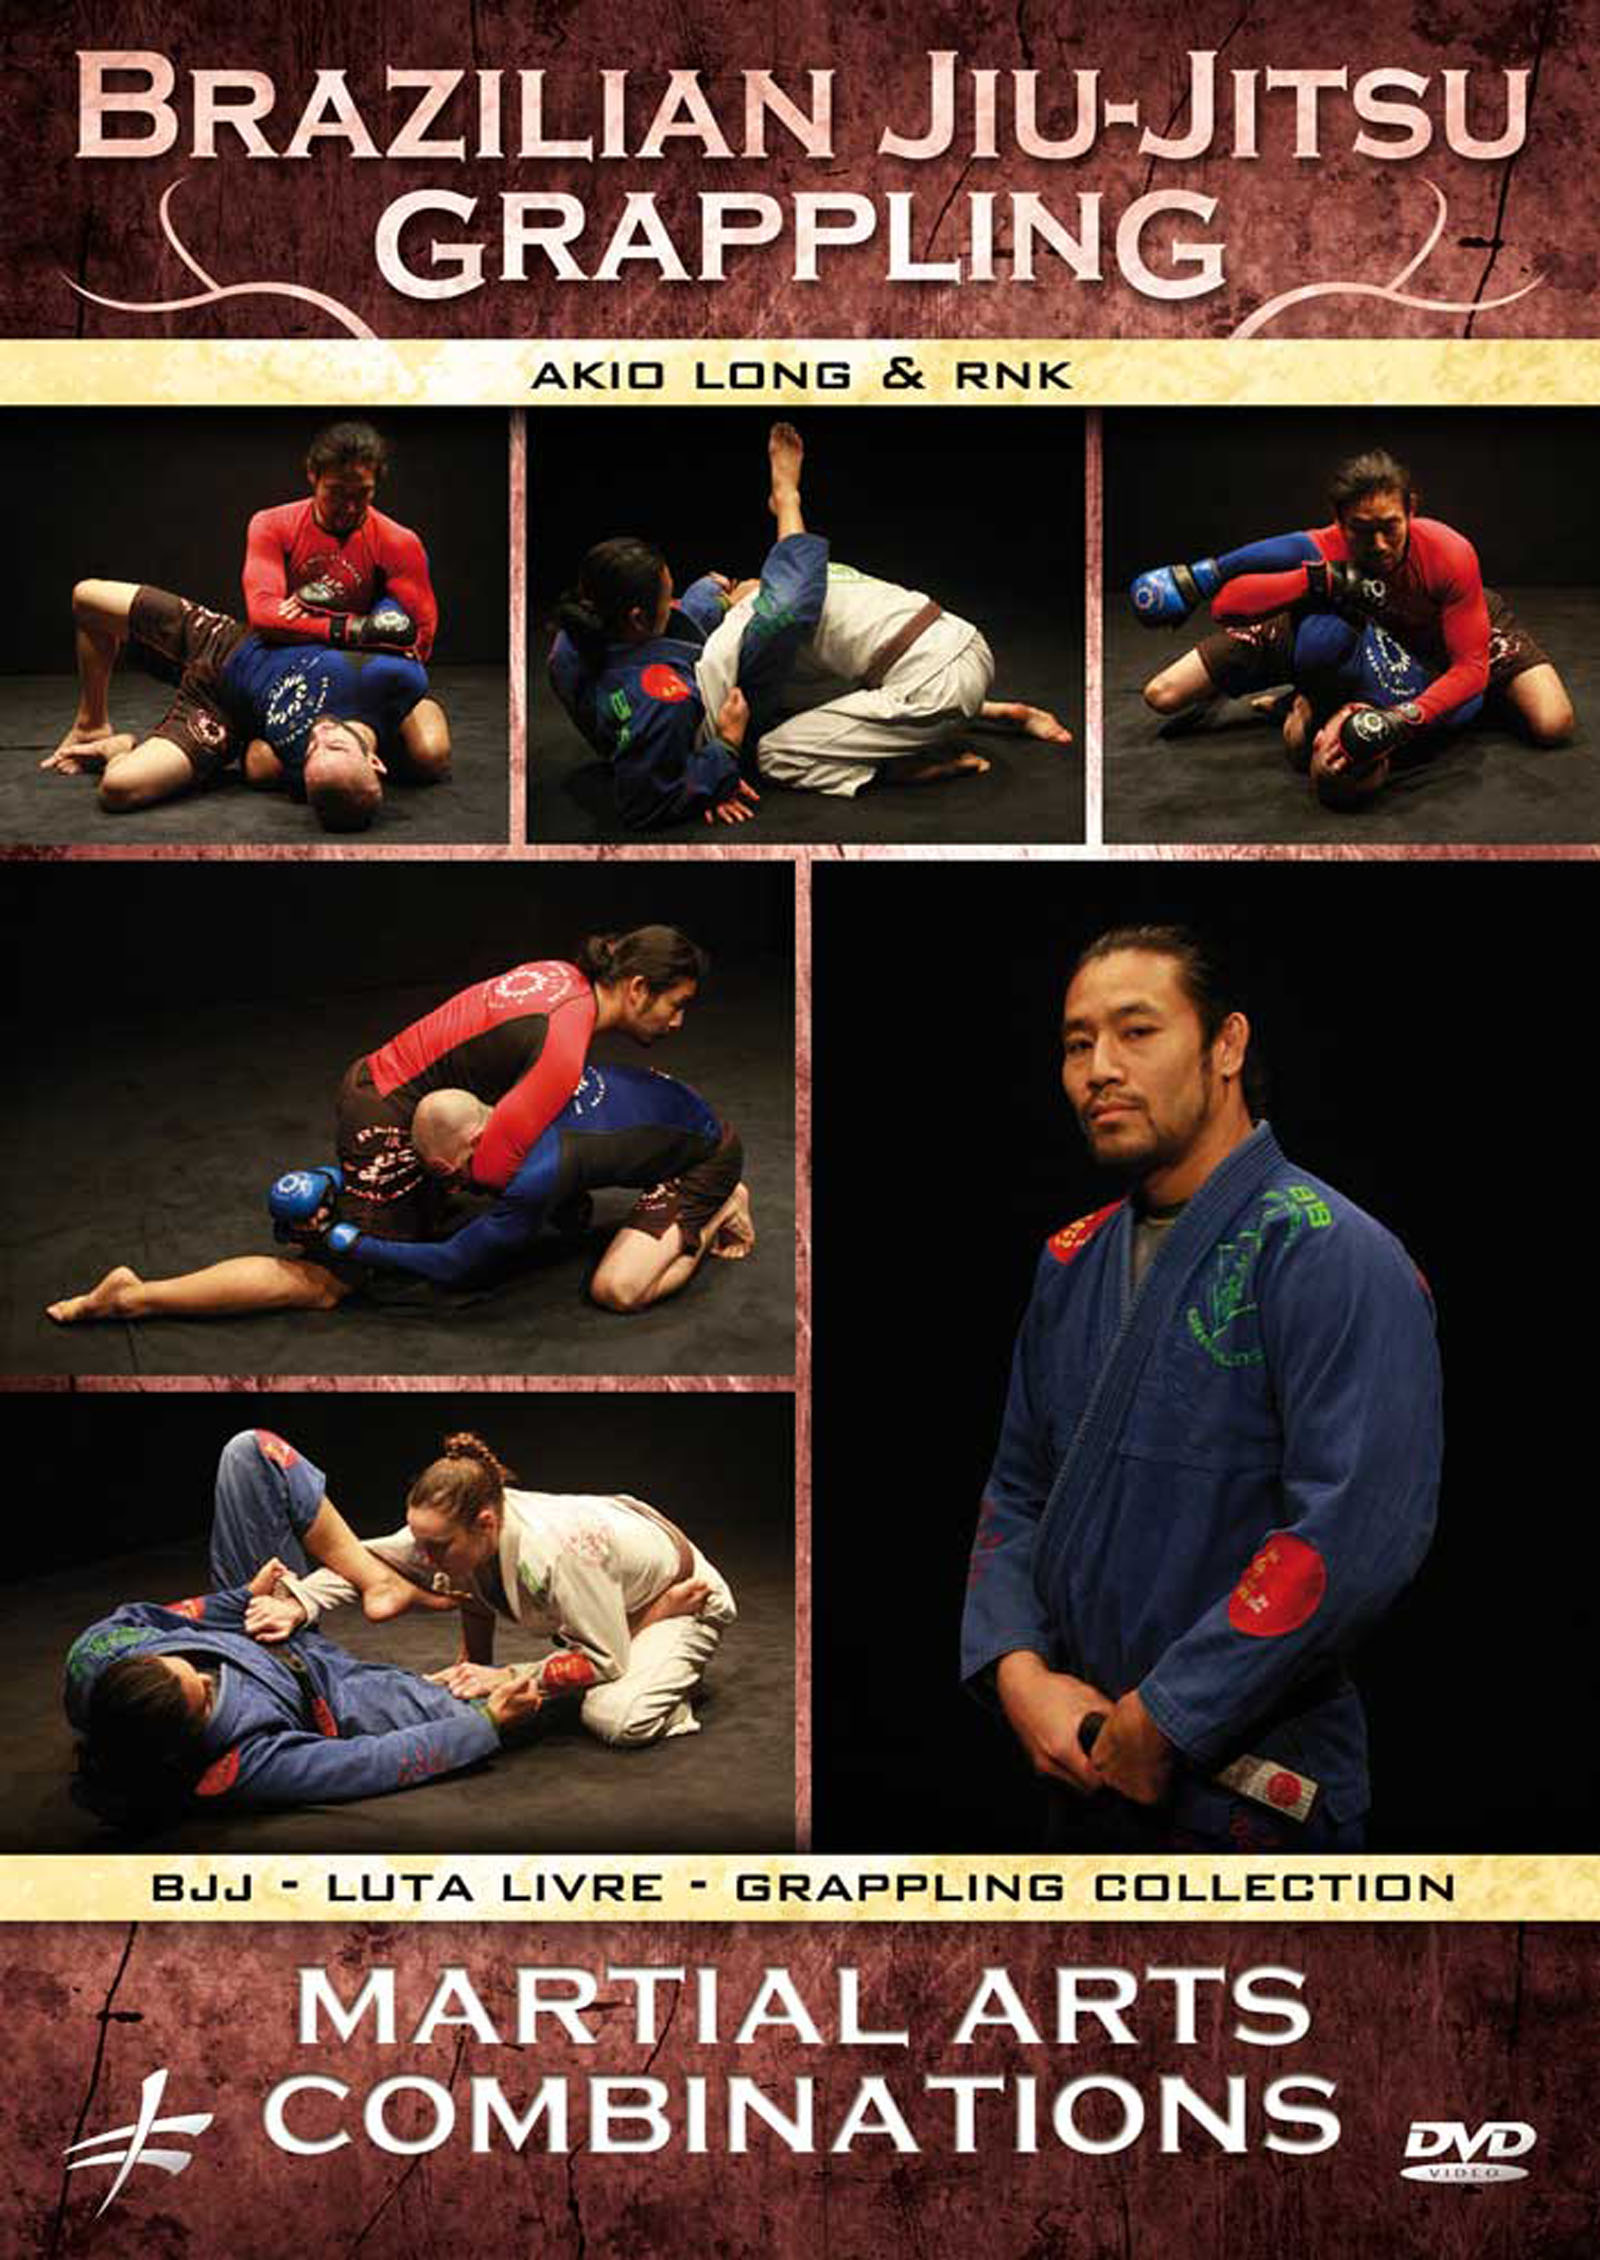 Brazilian Jiu-Jitsu Grappling: Martial Arts Combinations